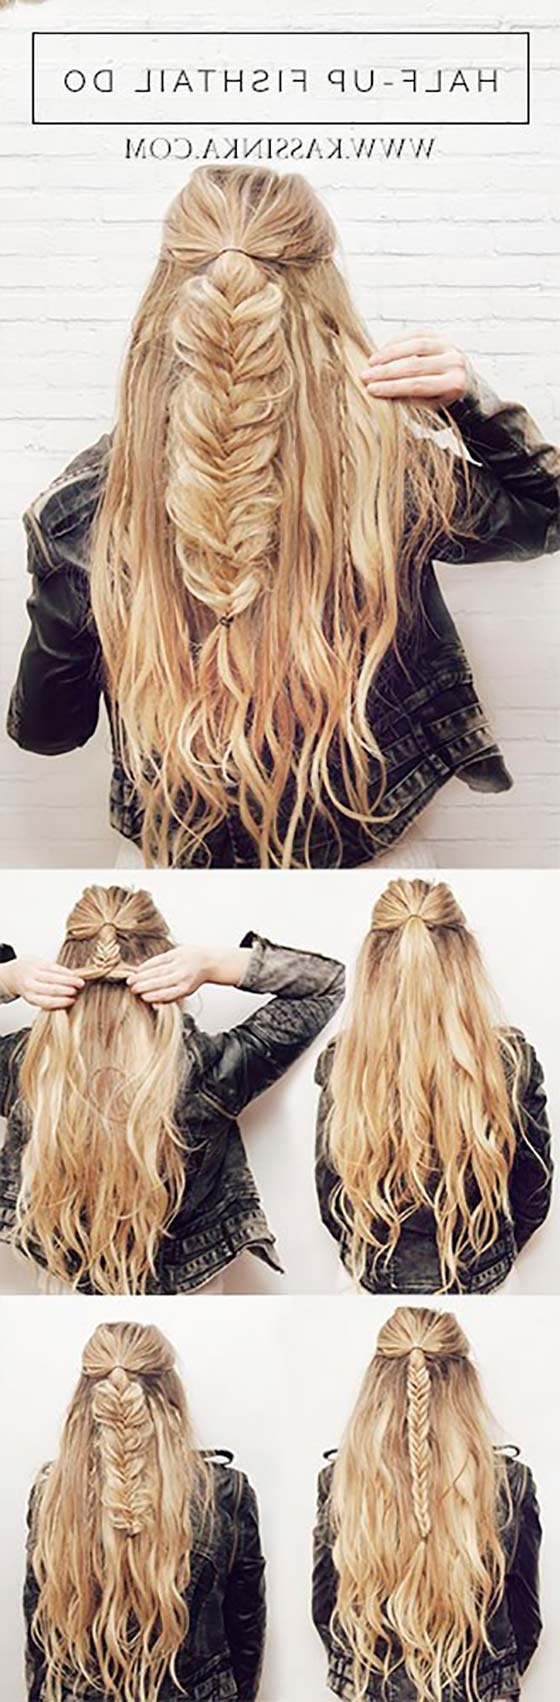 Best And Newest Up Braided Hairstyles Pertaining To 40 Braided Hairstyles For Long Hair (View 3 of 15)